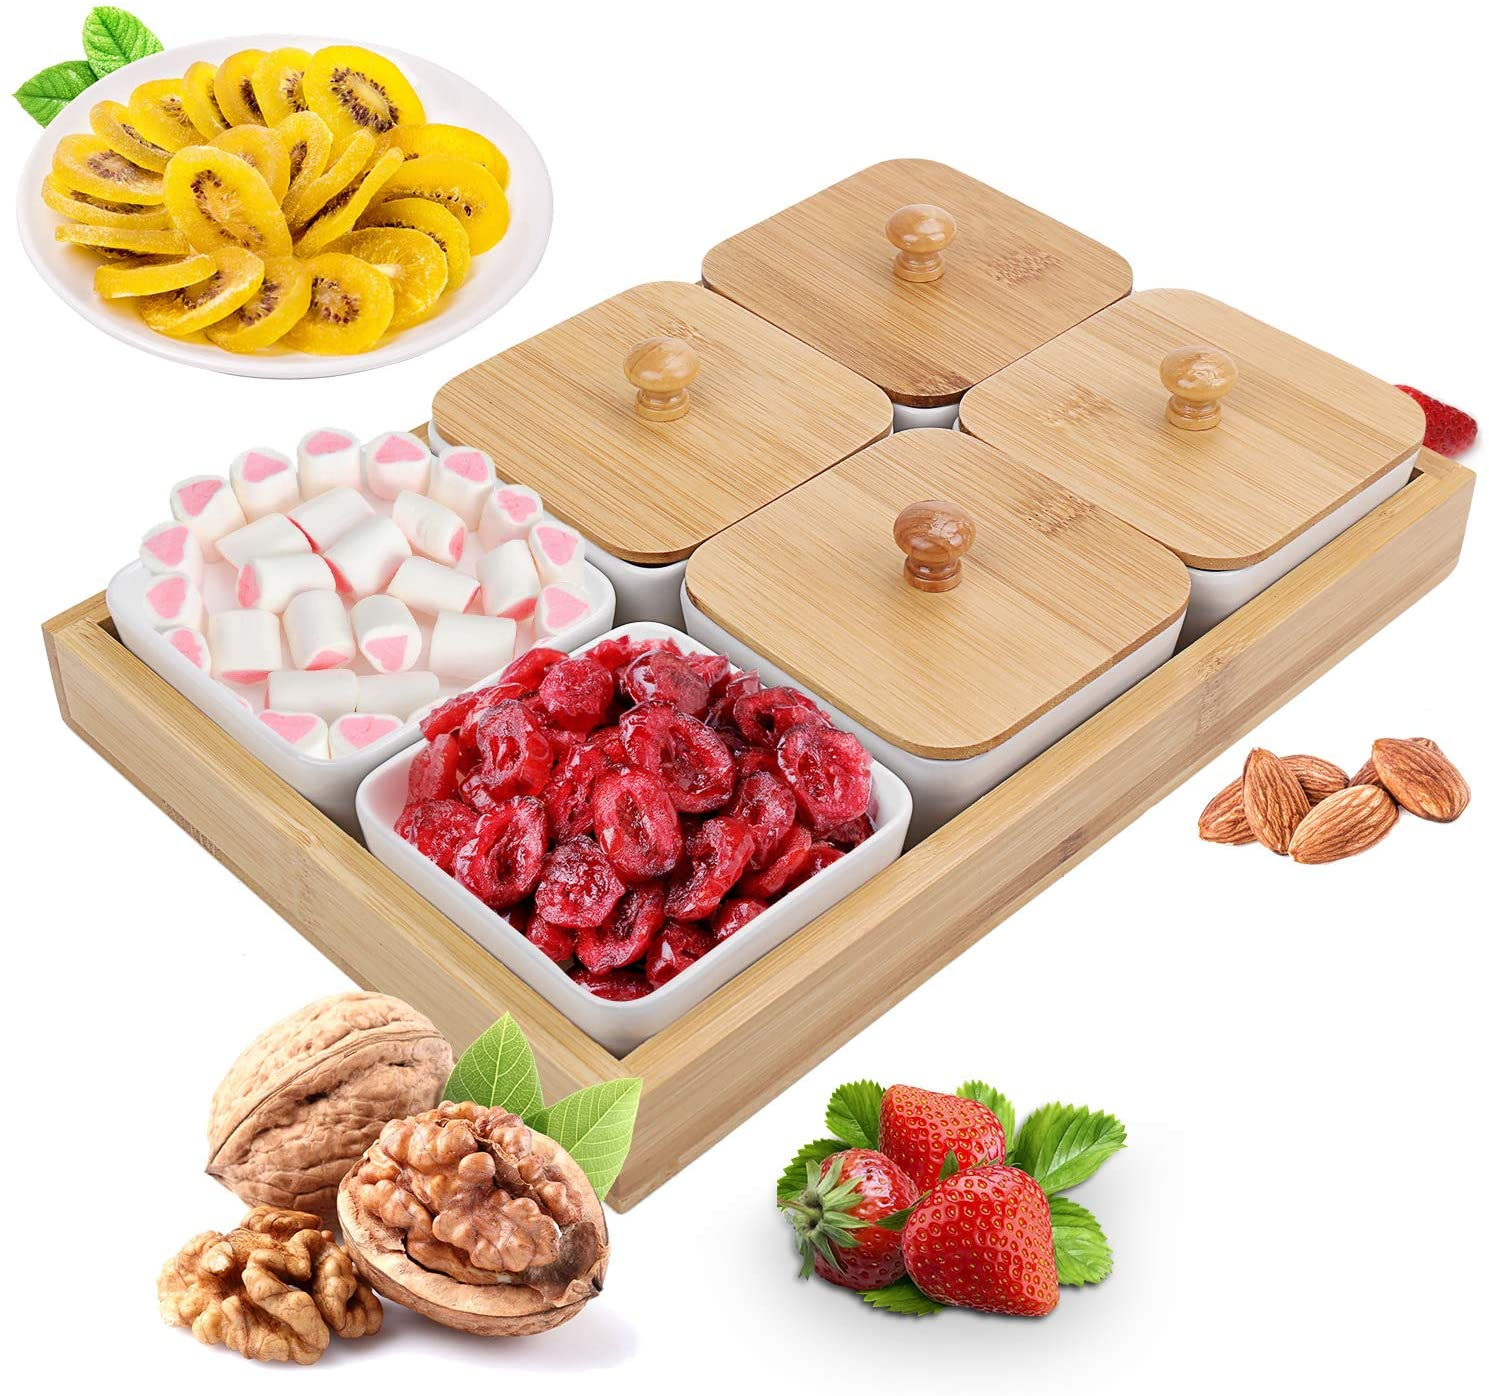 Ceramic Snack Serving Tray,6 Compartment Tray Serving Platter with Bamboo Lid and Wooden Pallets,Moisture-proof Bowls for Food,Snacks,Condiments, Appetizers